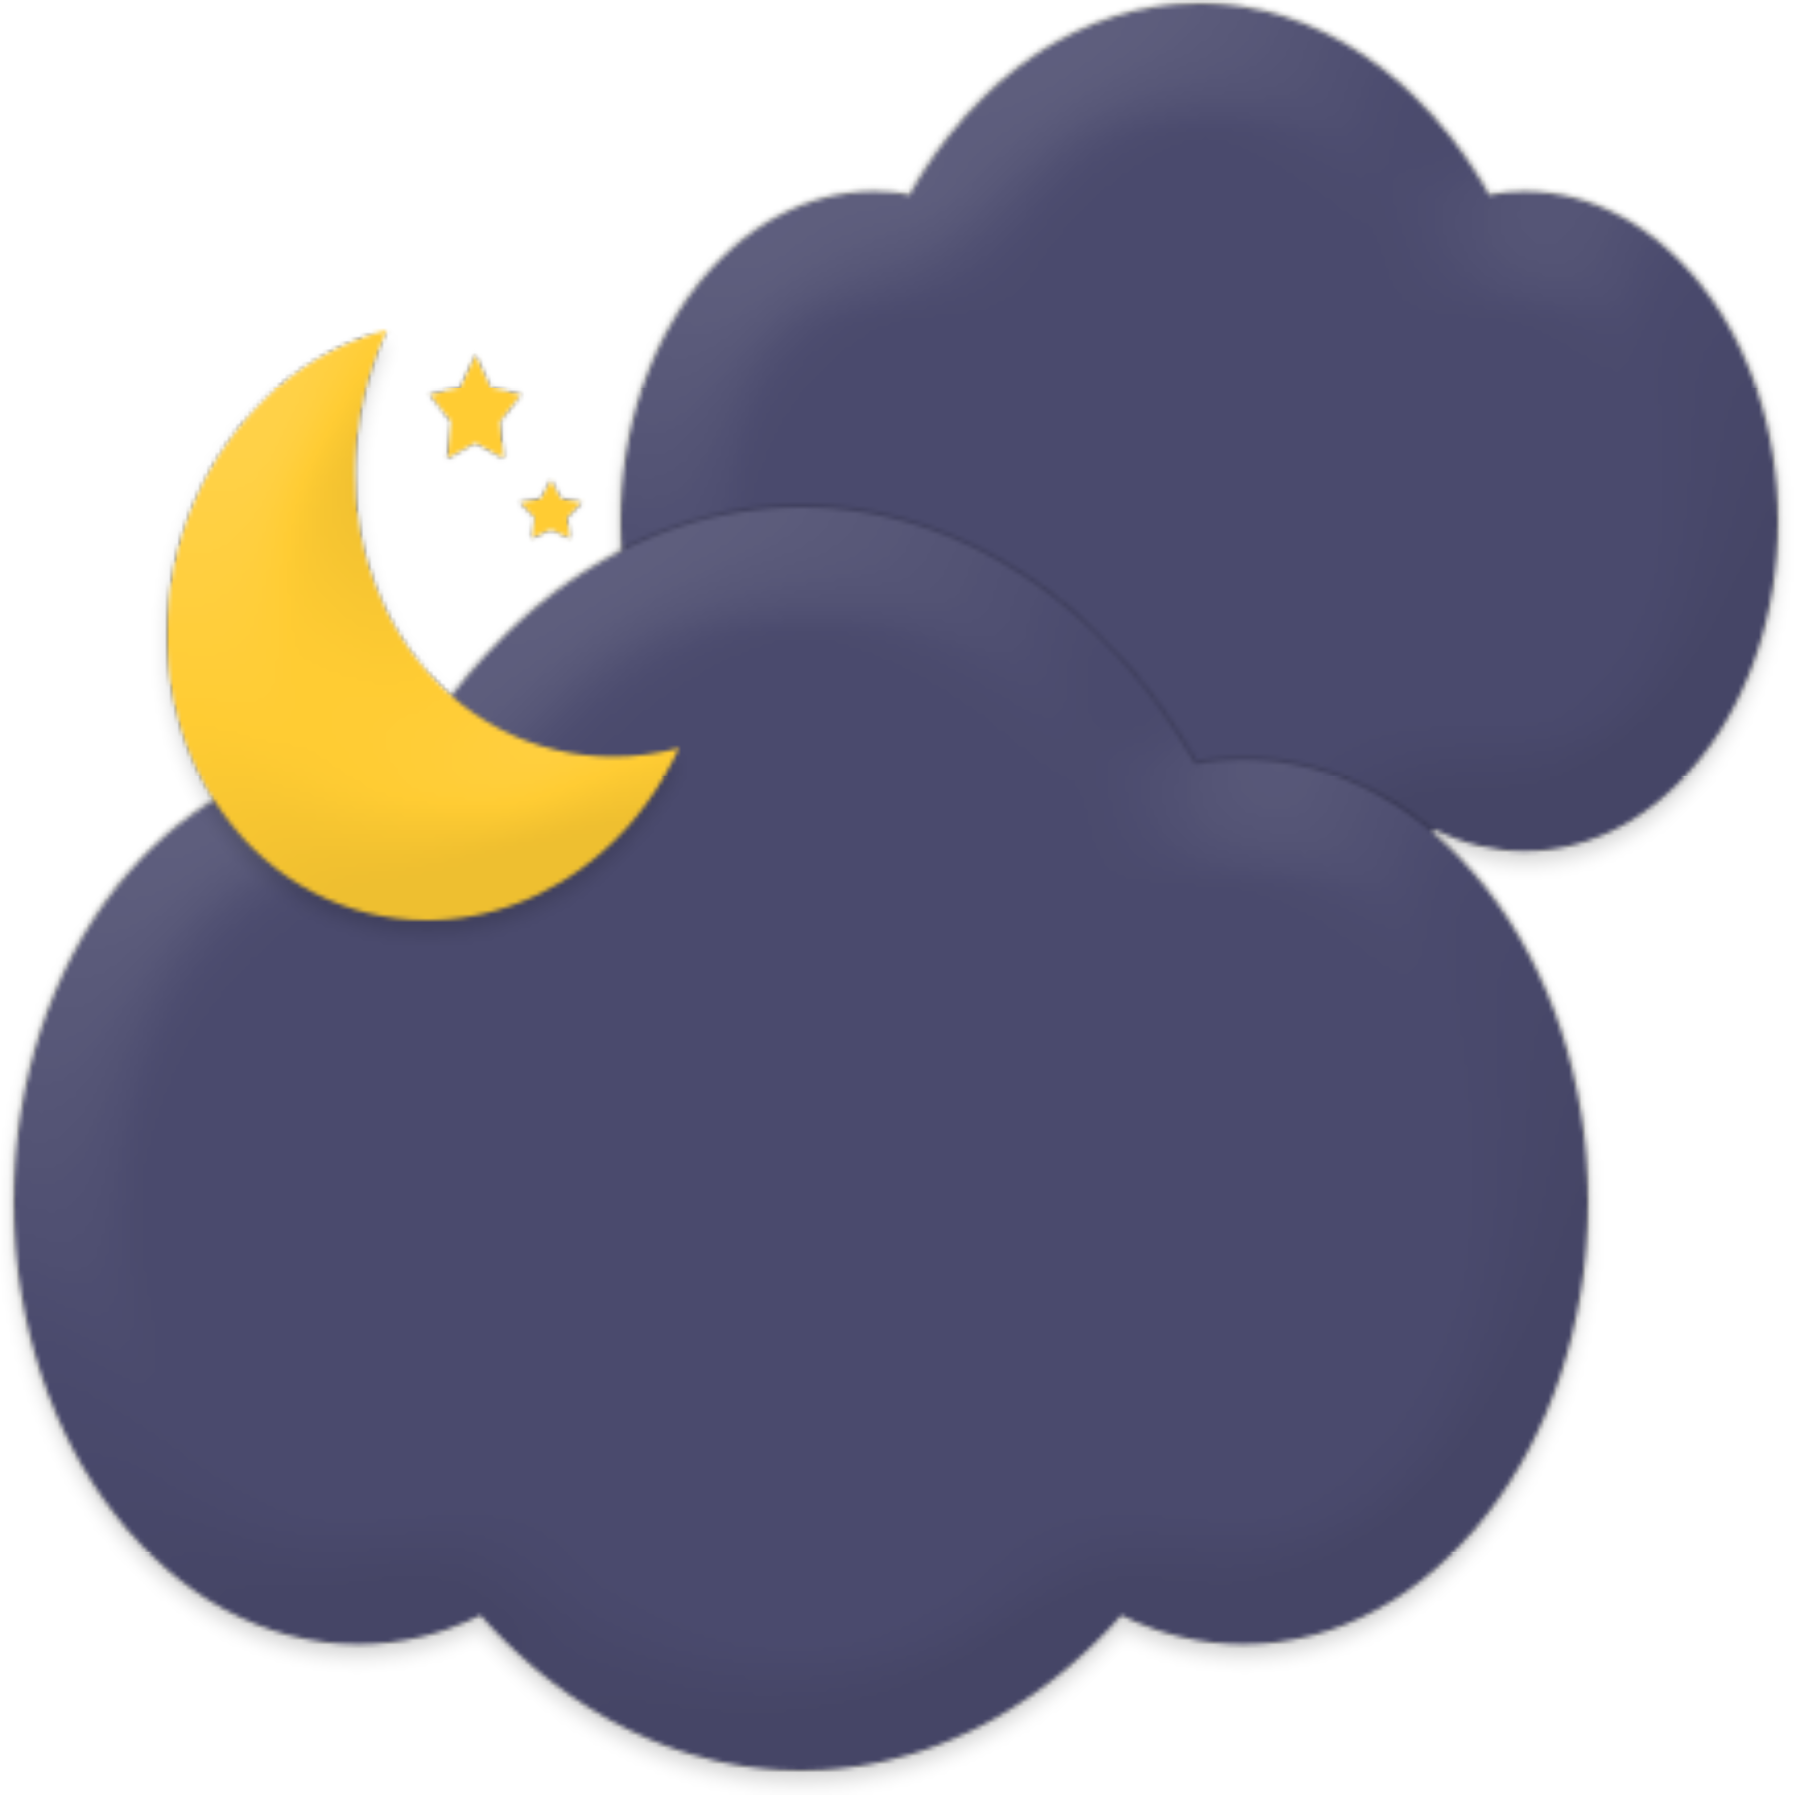 cloudy clipart cool climate